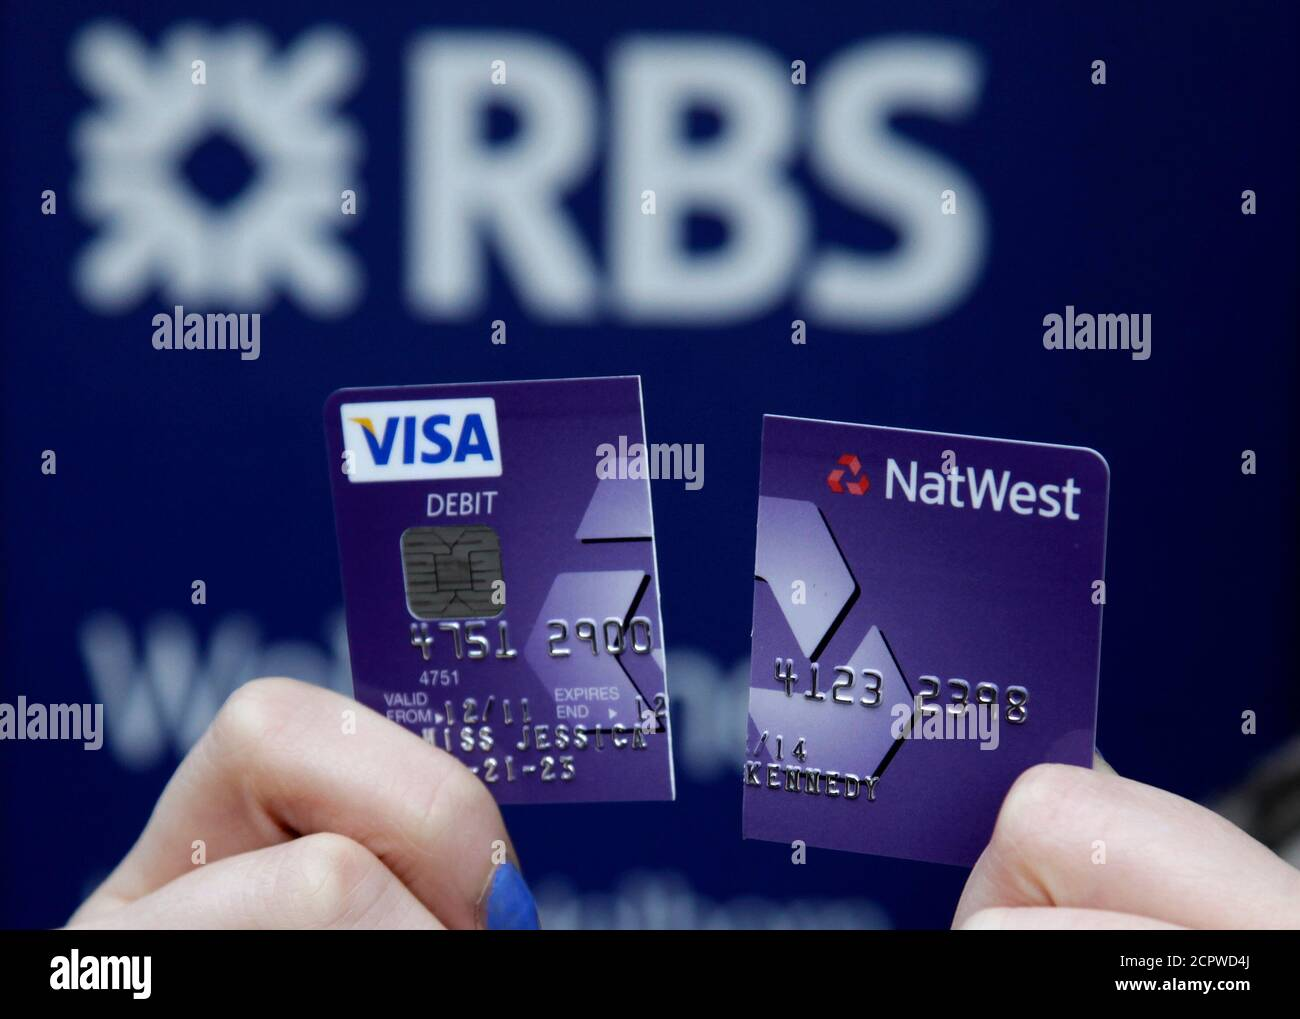 Bank Of Scotland Debit Card High Resolution Stock Photography And Images Alamy